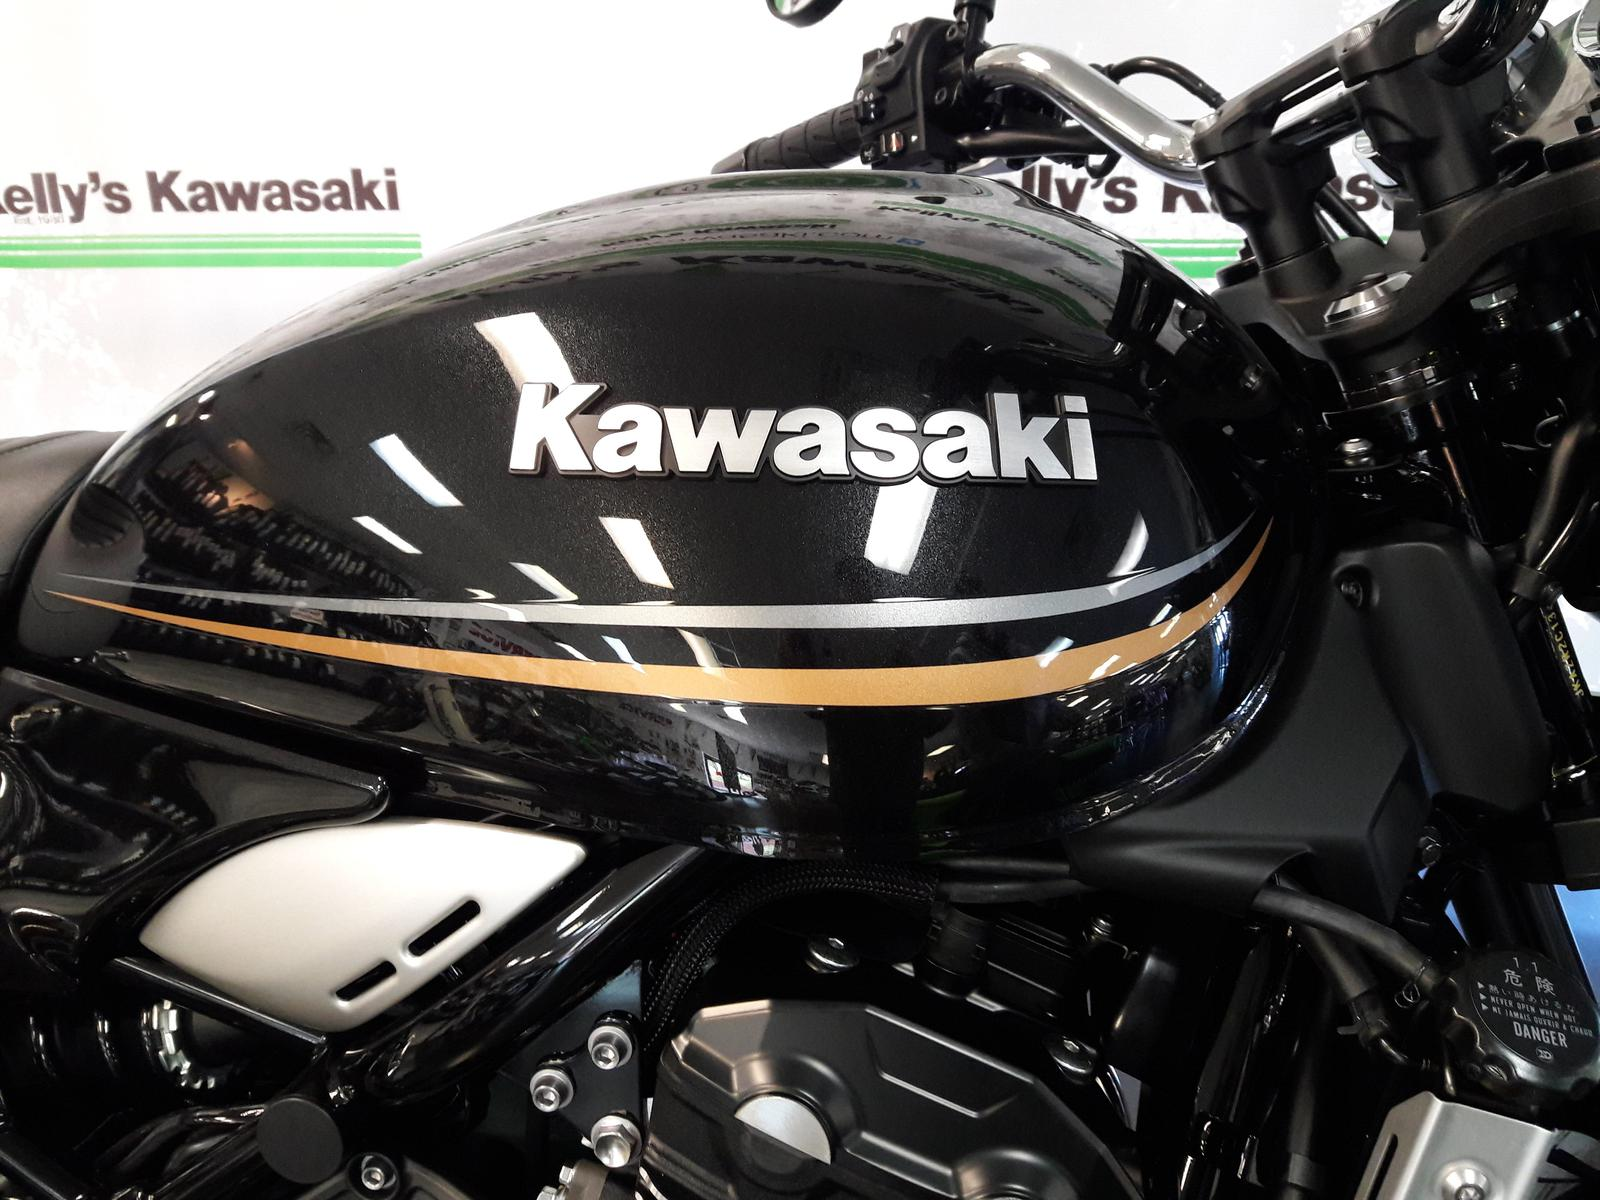 2018 Kawasaki Z 900 RS For Sale In Mesa AZ Kellys